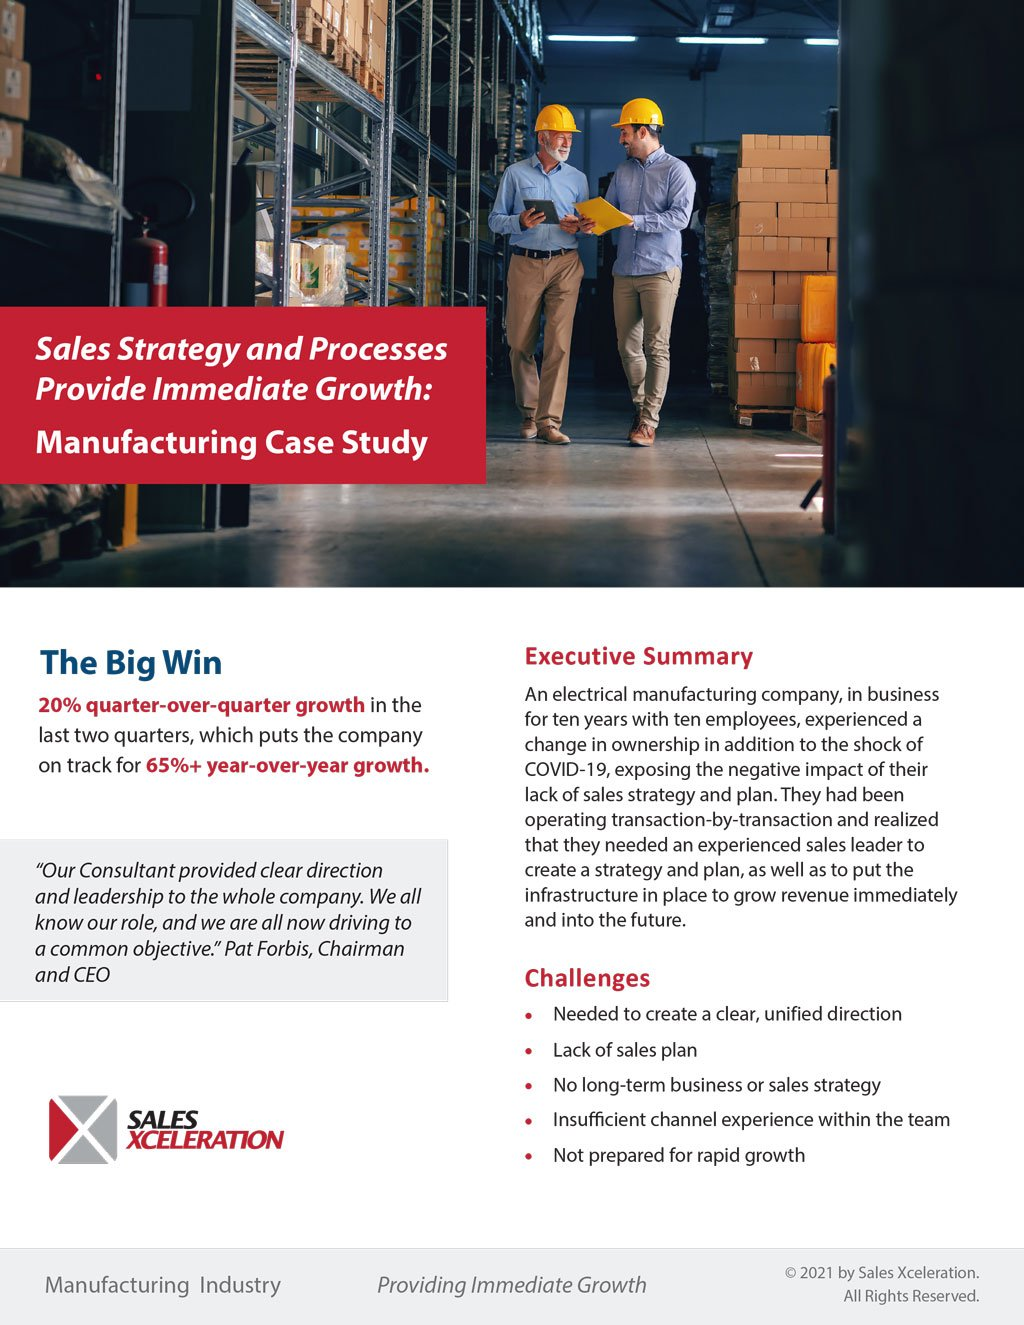 Sales Strategy and Processes Provide Immediate Growth: Manufacturing Case Study